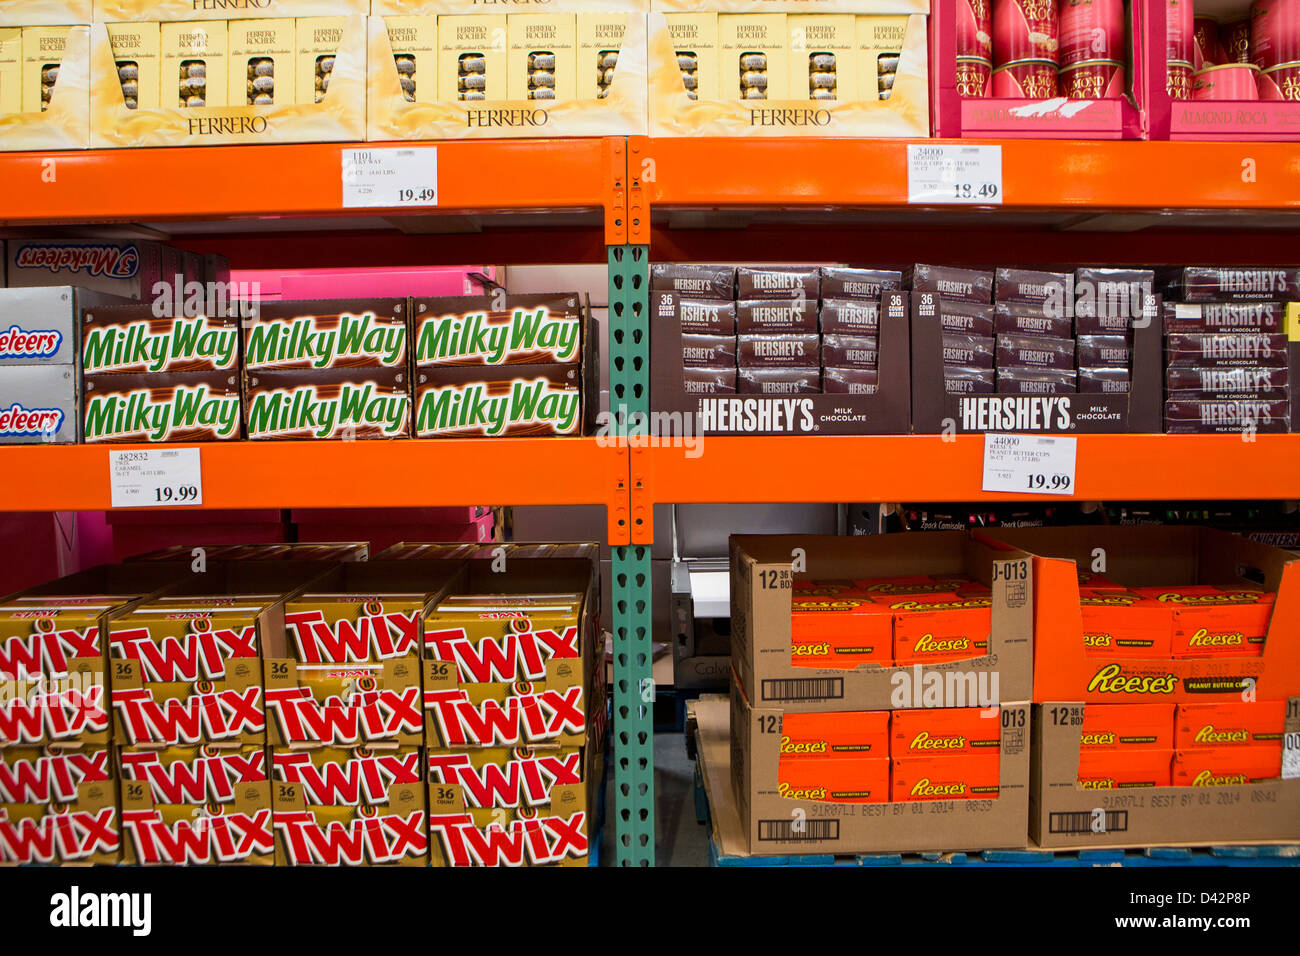 Milky Way, Reese's Peanut Butter Cups, Twix and Hershey's bars on display at a Costco Wholesale Warehouse - Stock Image